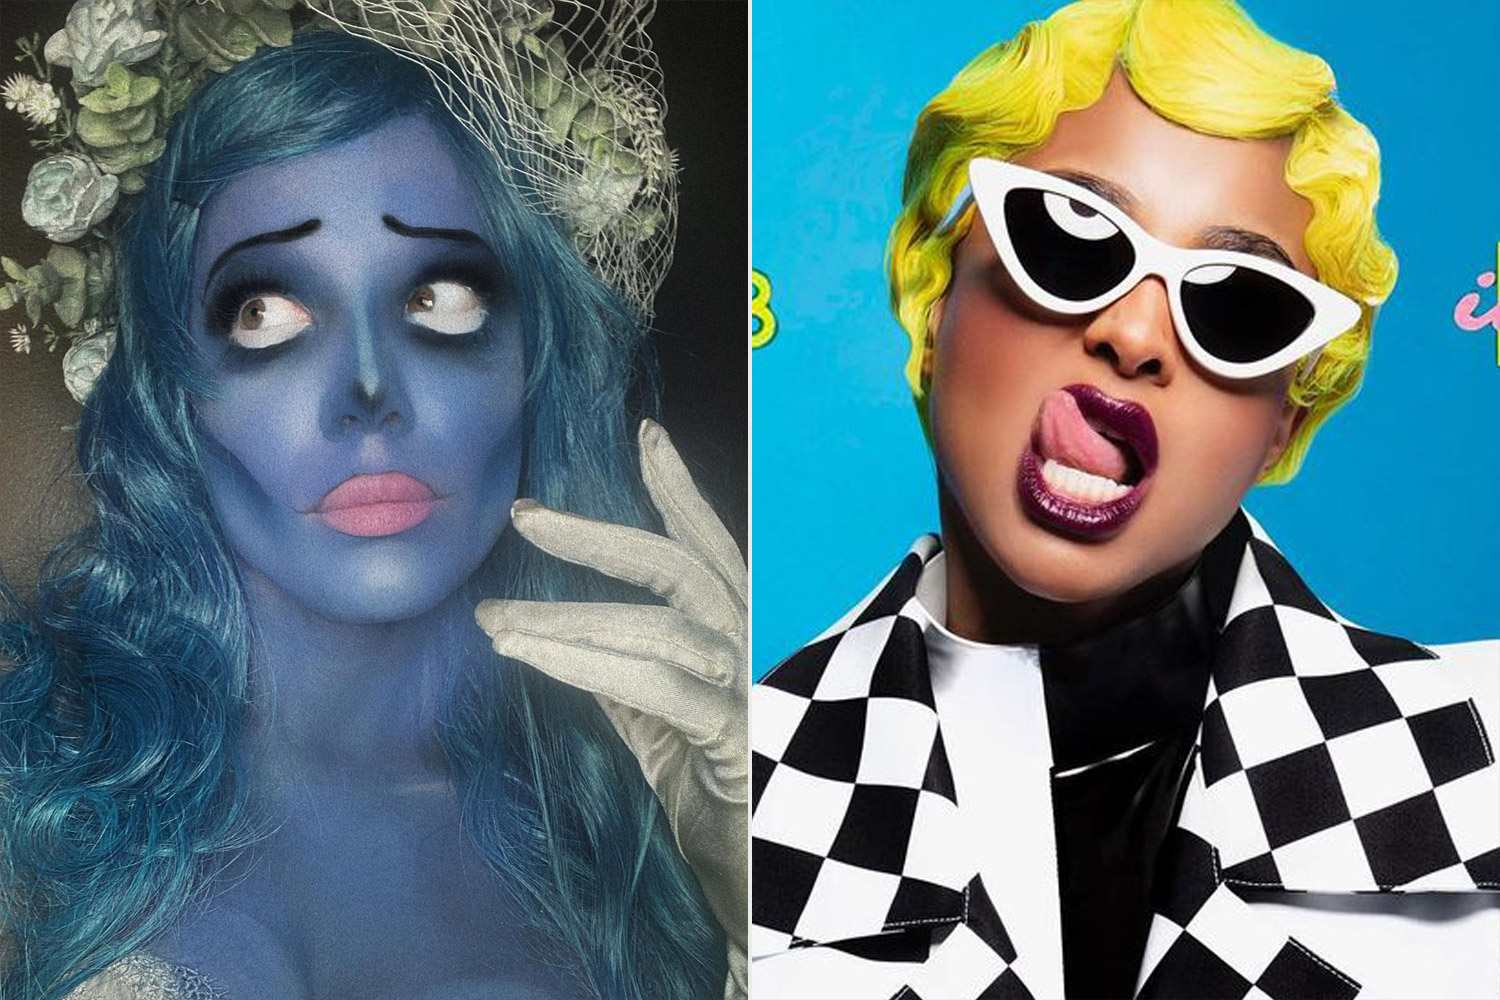 Gallery: The Best Celebrity Costumes of 2020